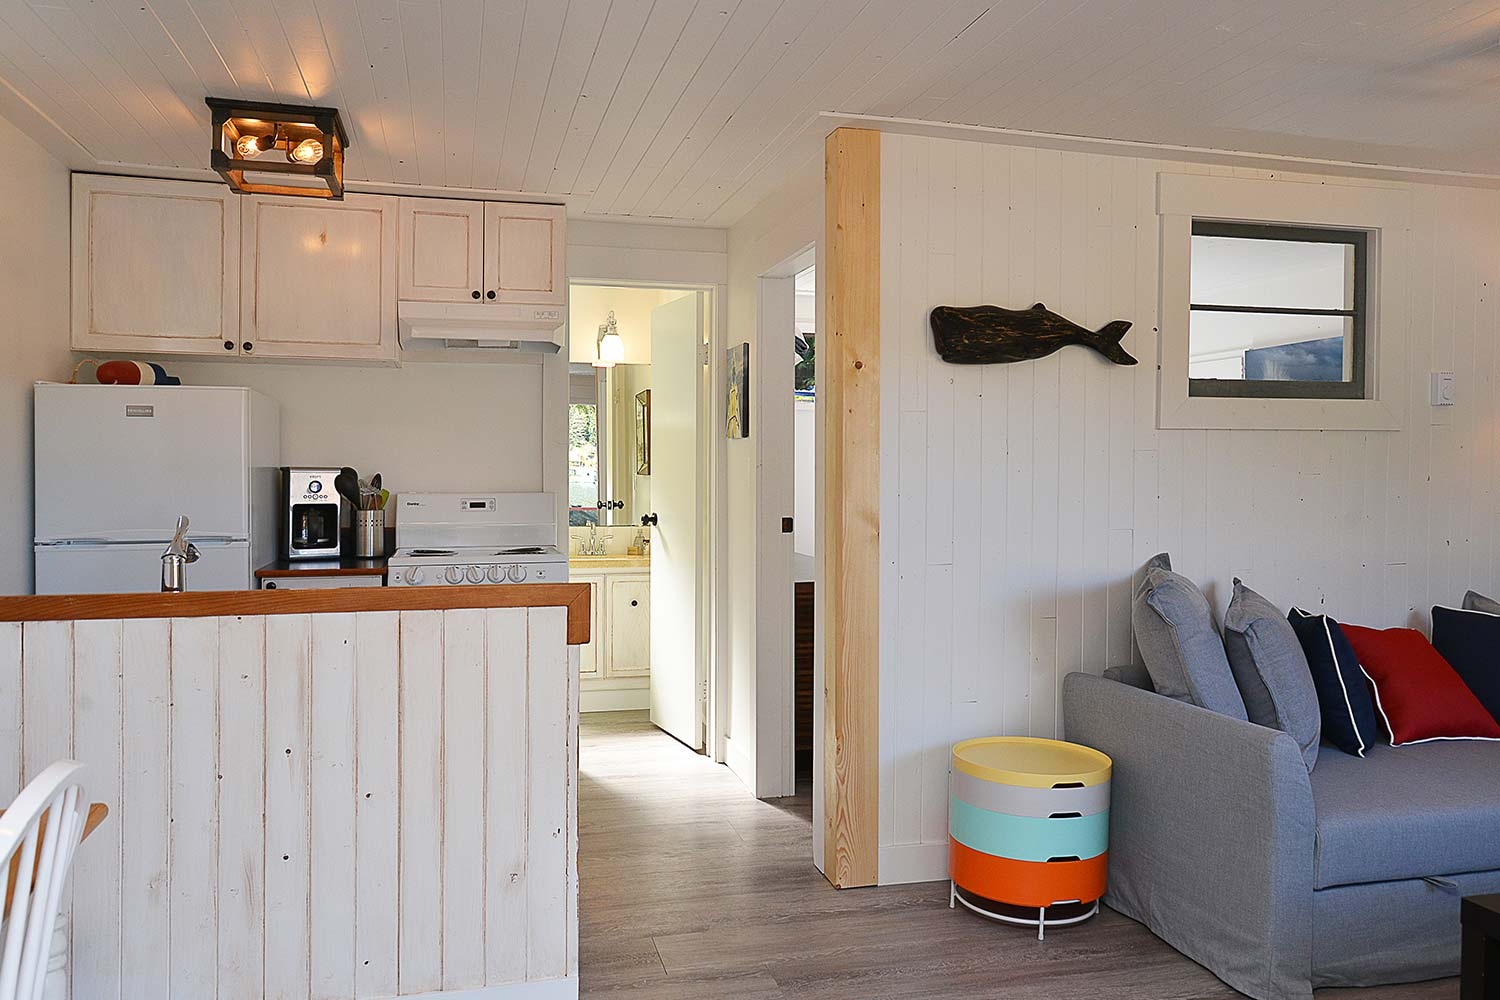 The kitchenette, hallway, and living room in the Mussel Beach waterfront cottage at John Henry's Resort.